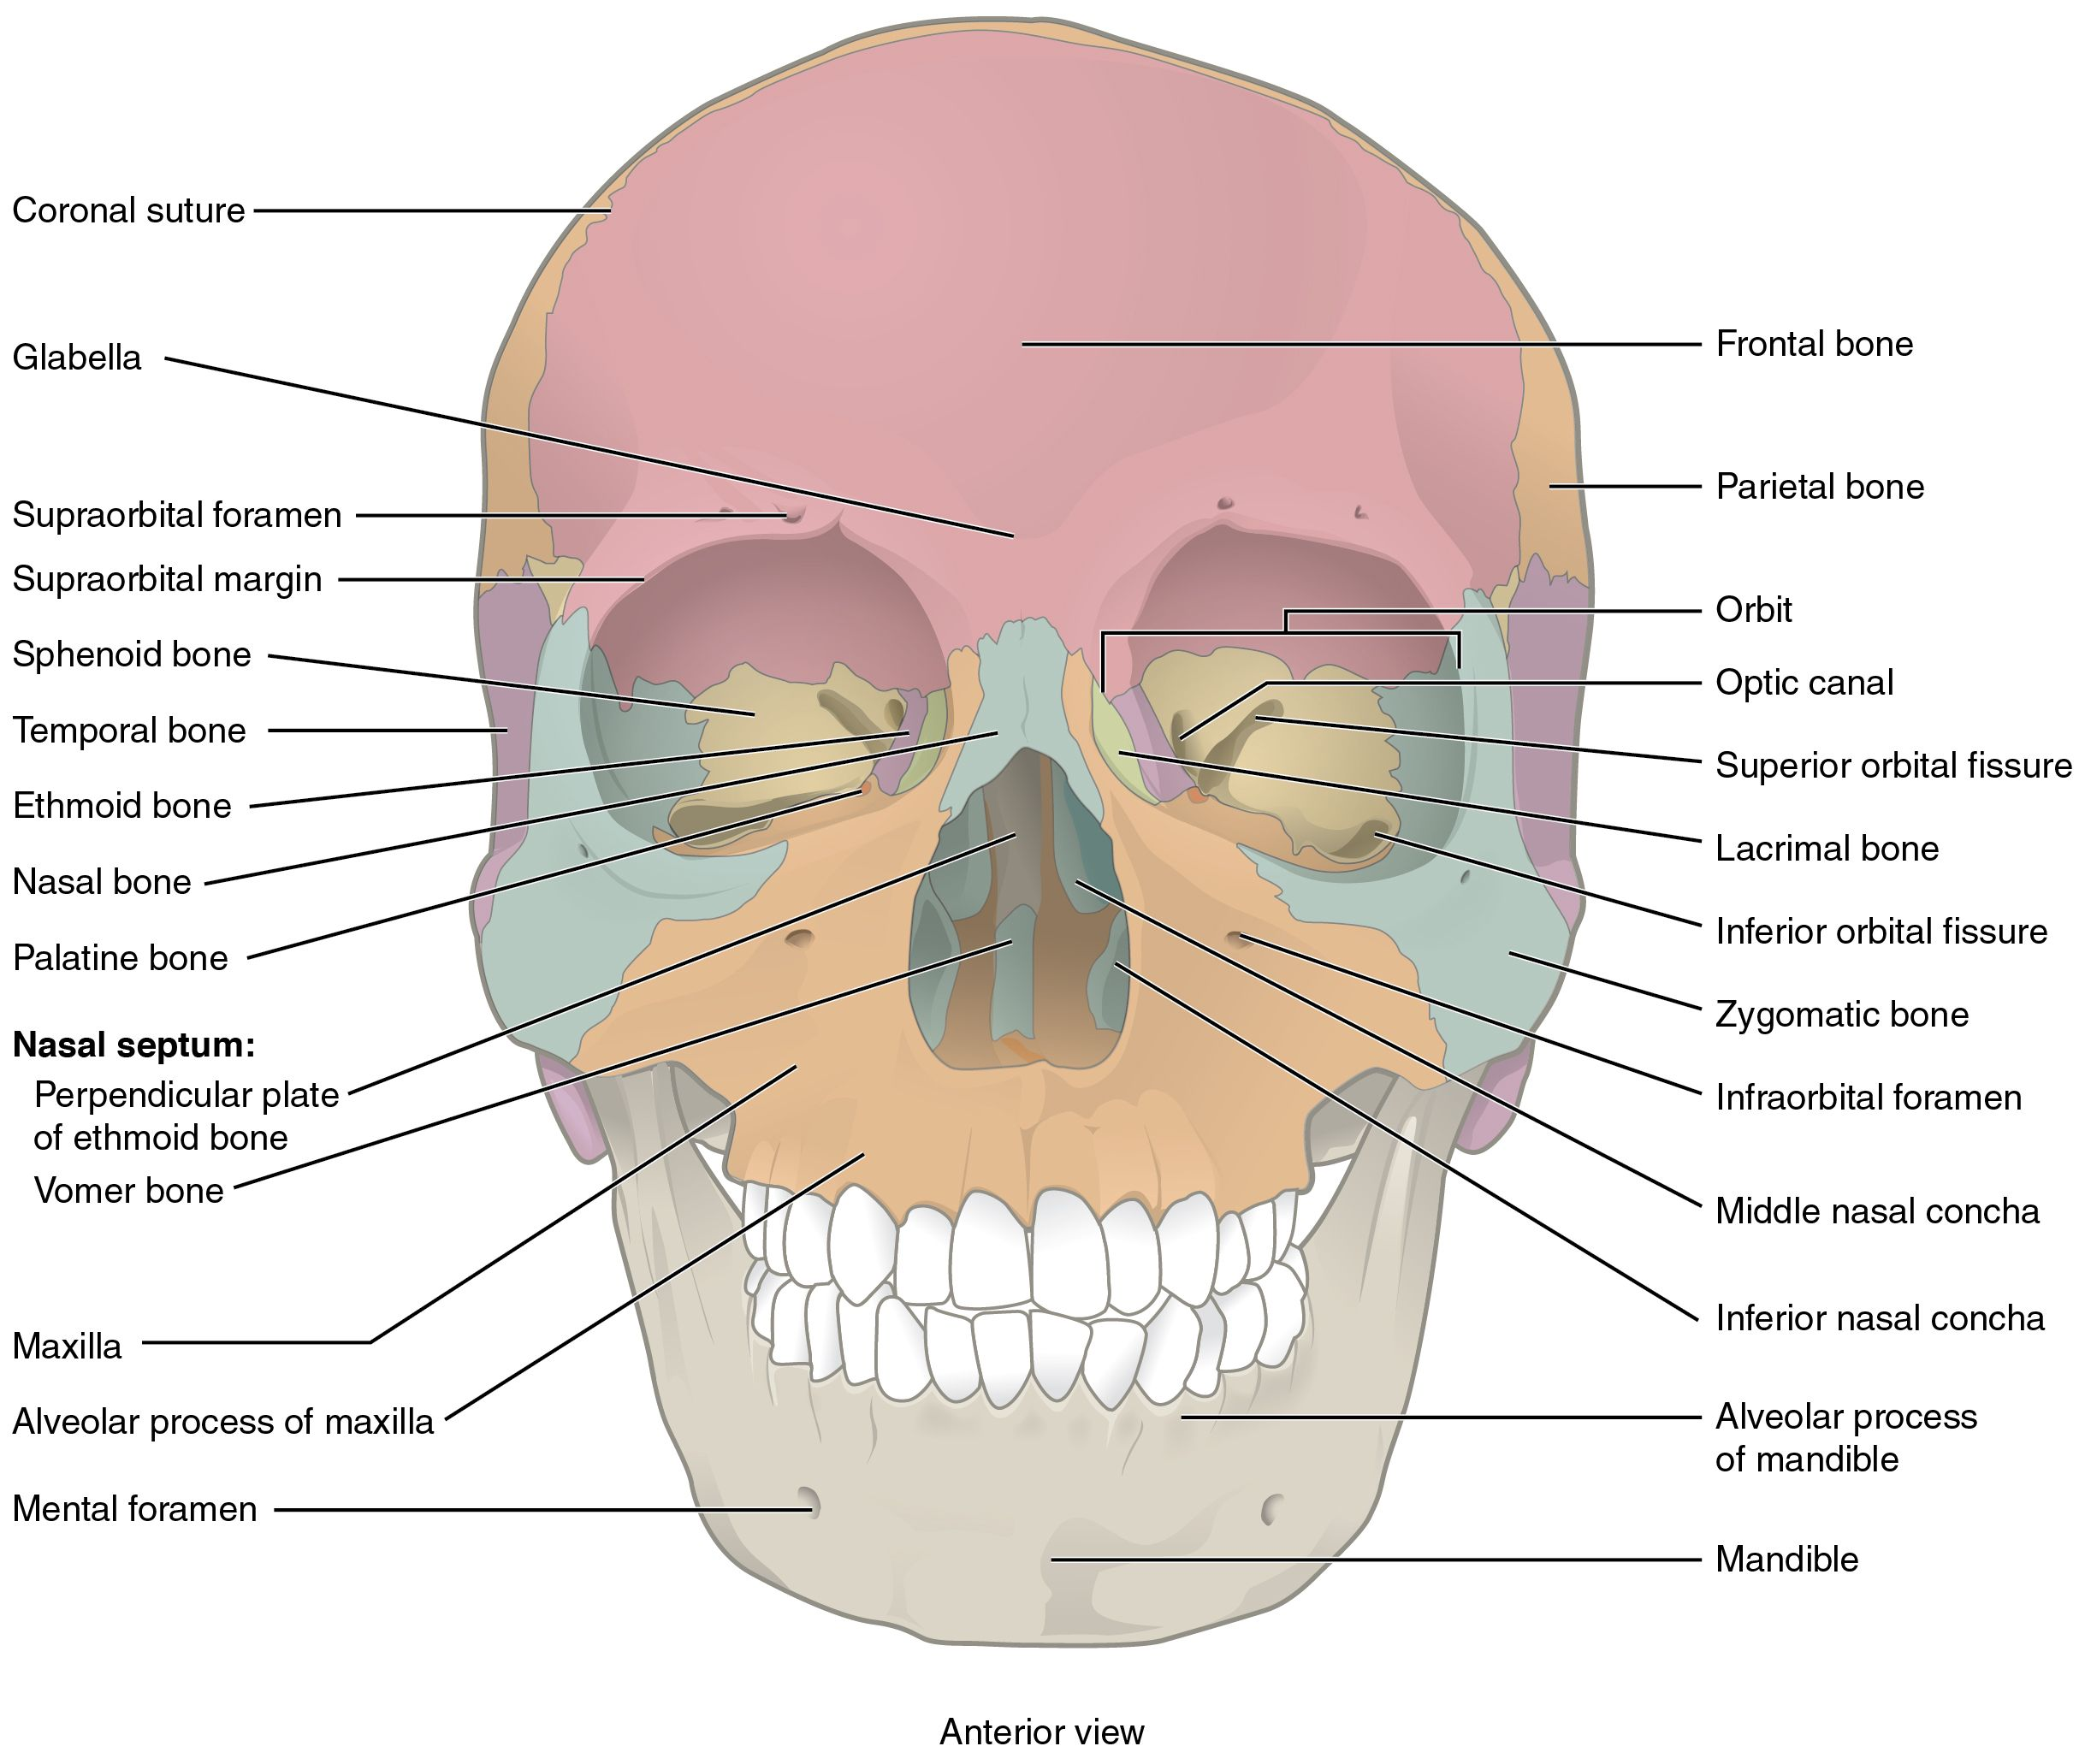 This Image Shows The Anterior View From The Front Of The Human